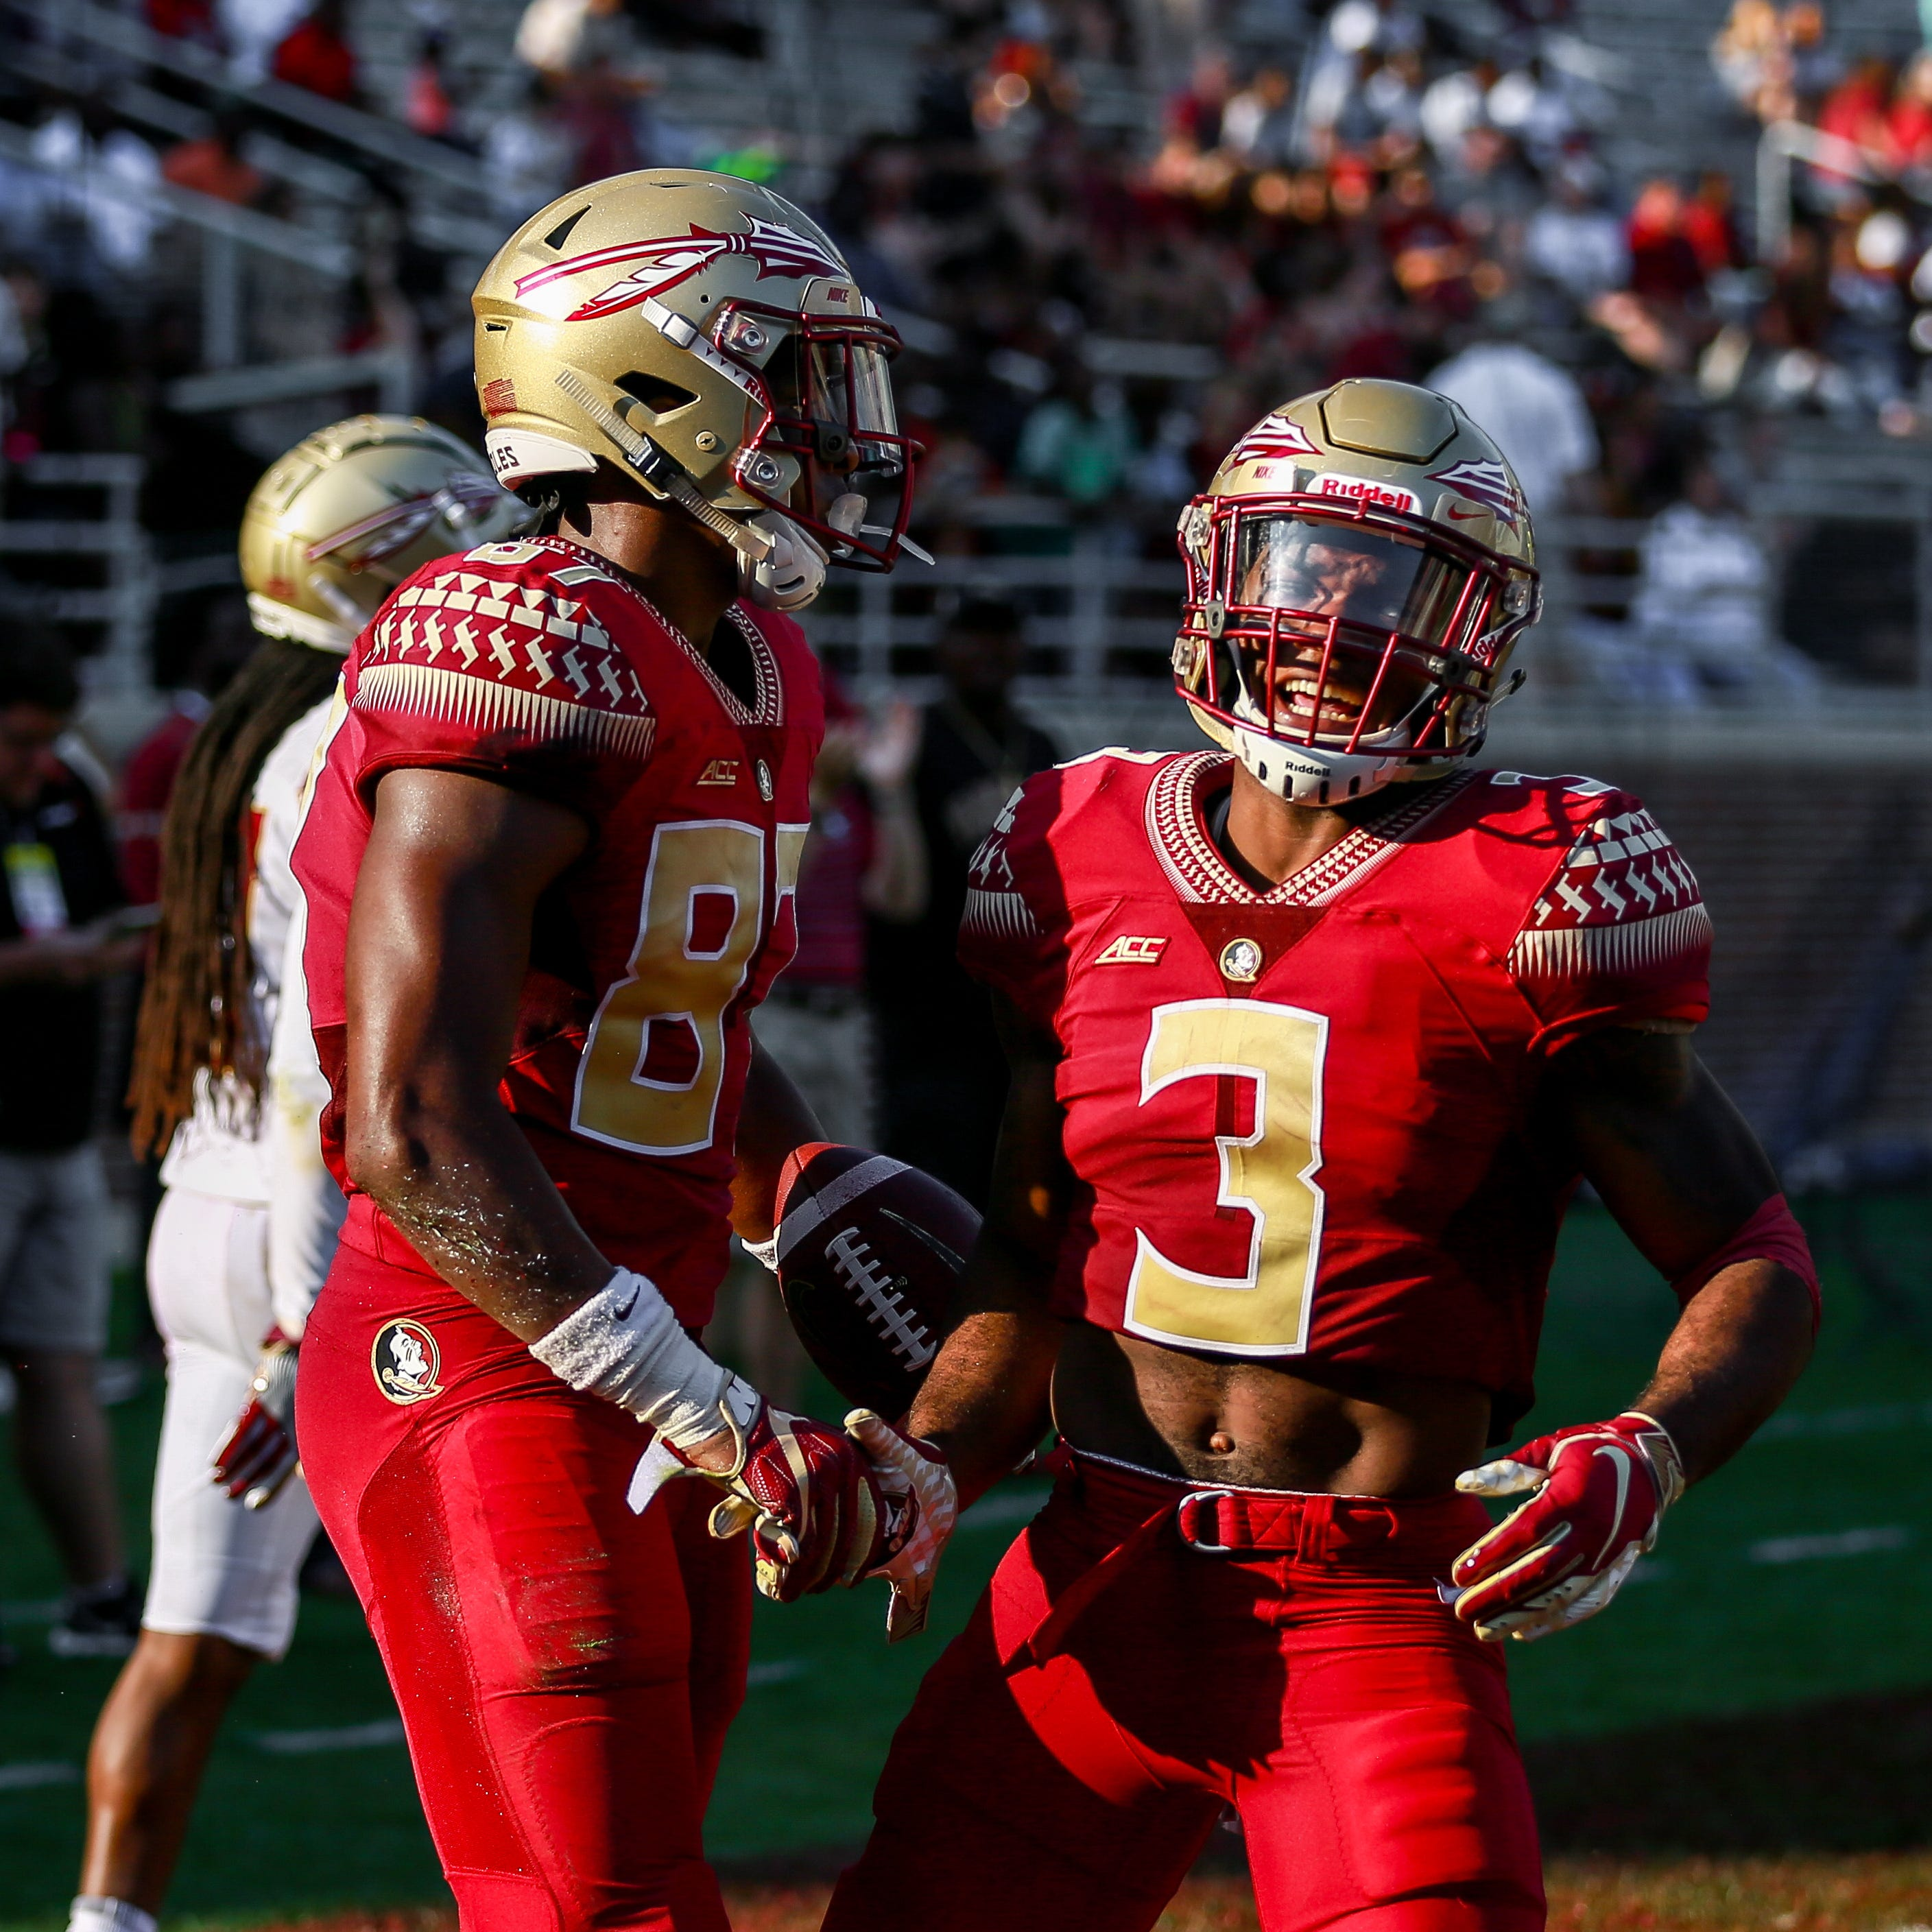 Garnet and Sold: FSU impresses at Spring Game